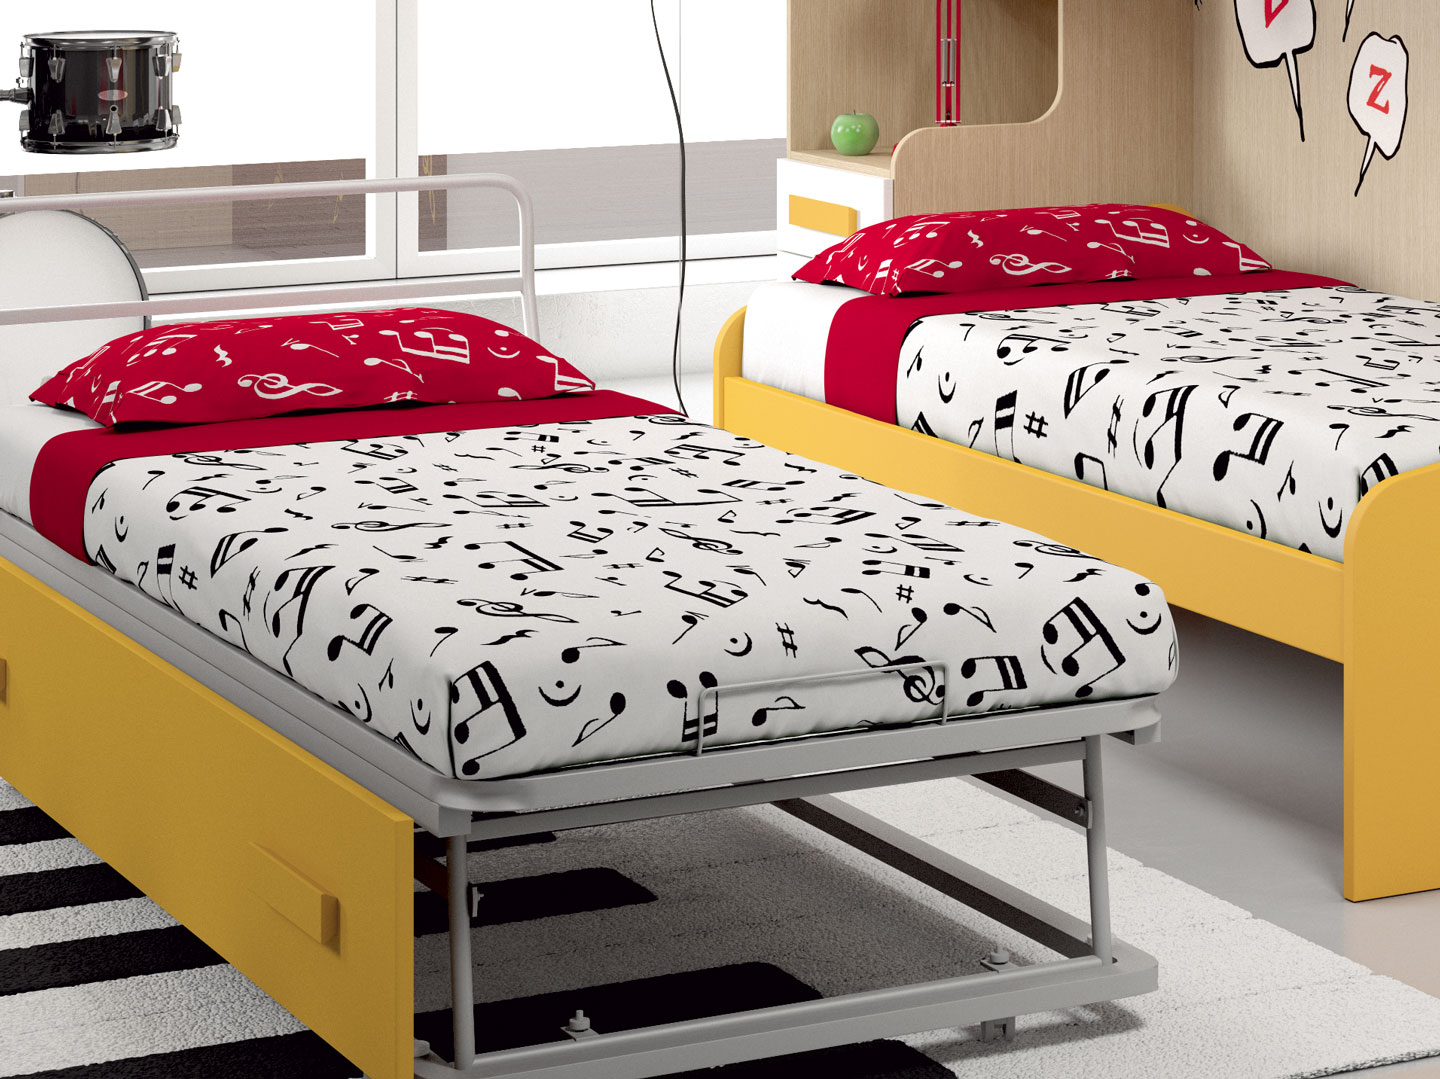 Children 39 s rooms made in italy ima mobili composition 13 - Mobili made in italy ...